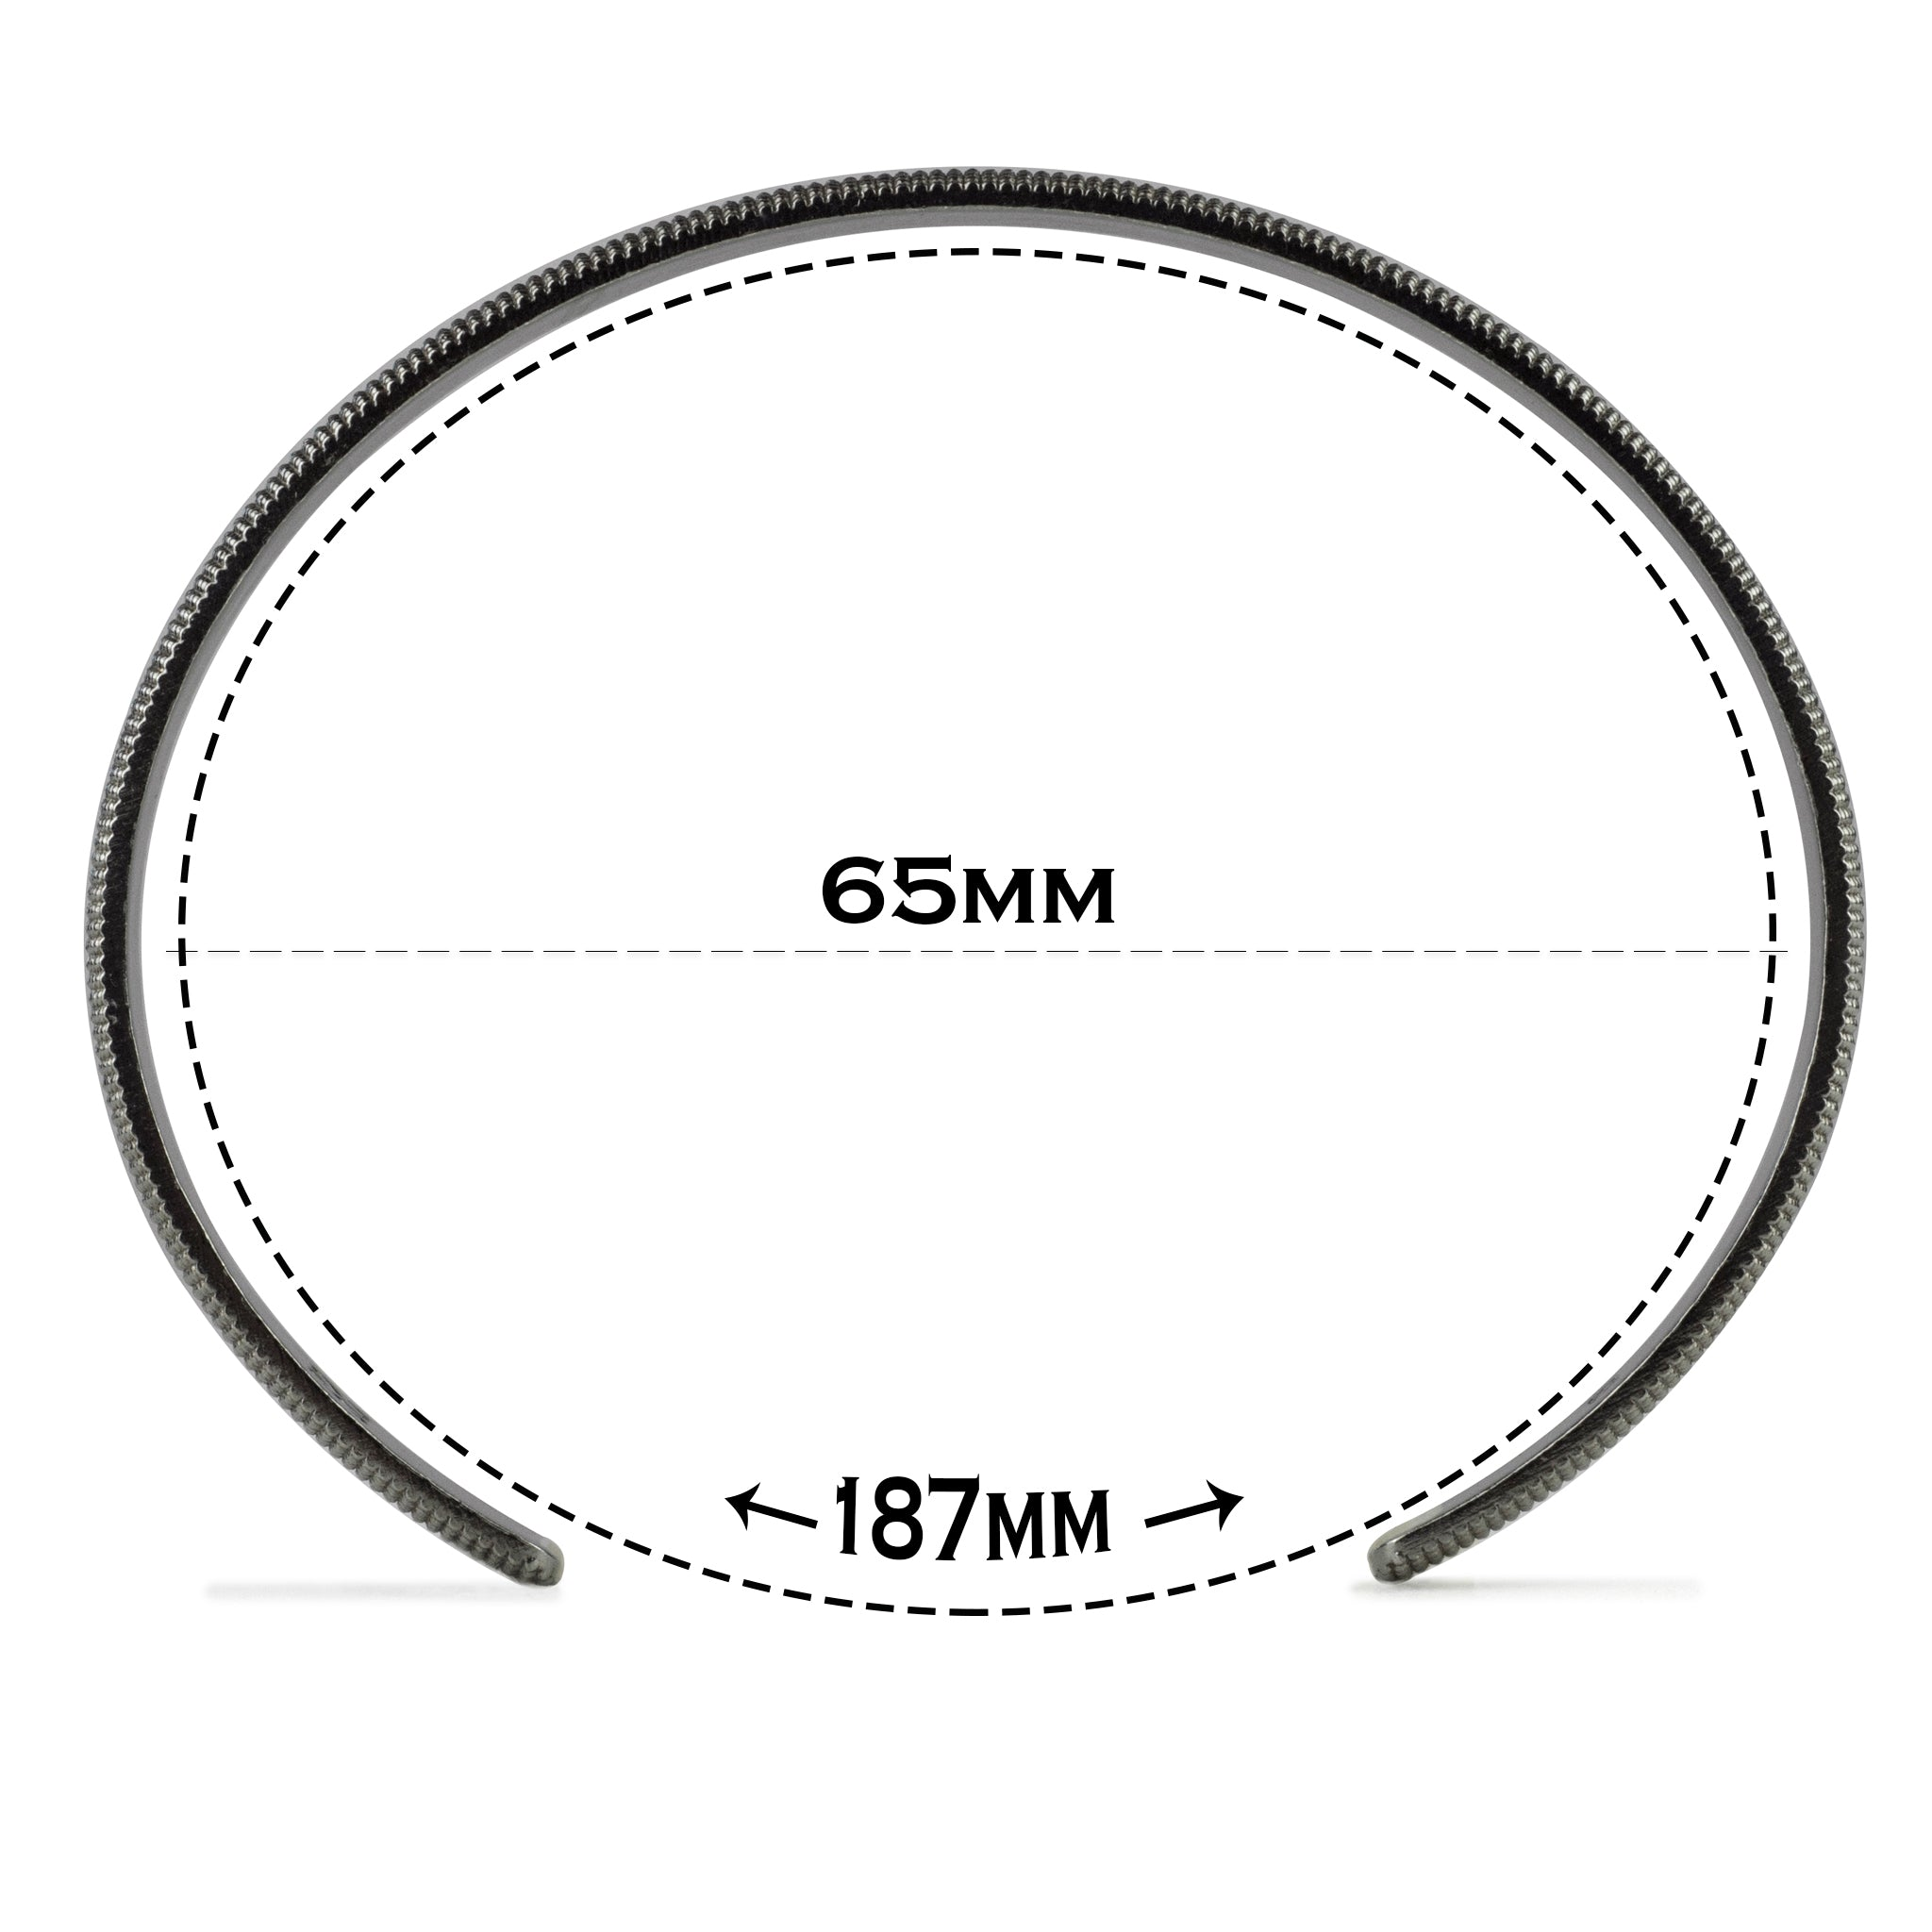 Large size cuff with text explaining the 187 millimeter circumference and illustrating size difference next to images of other sizes.